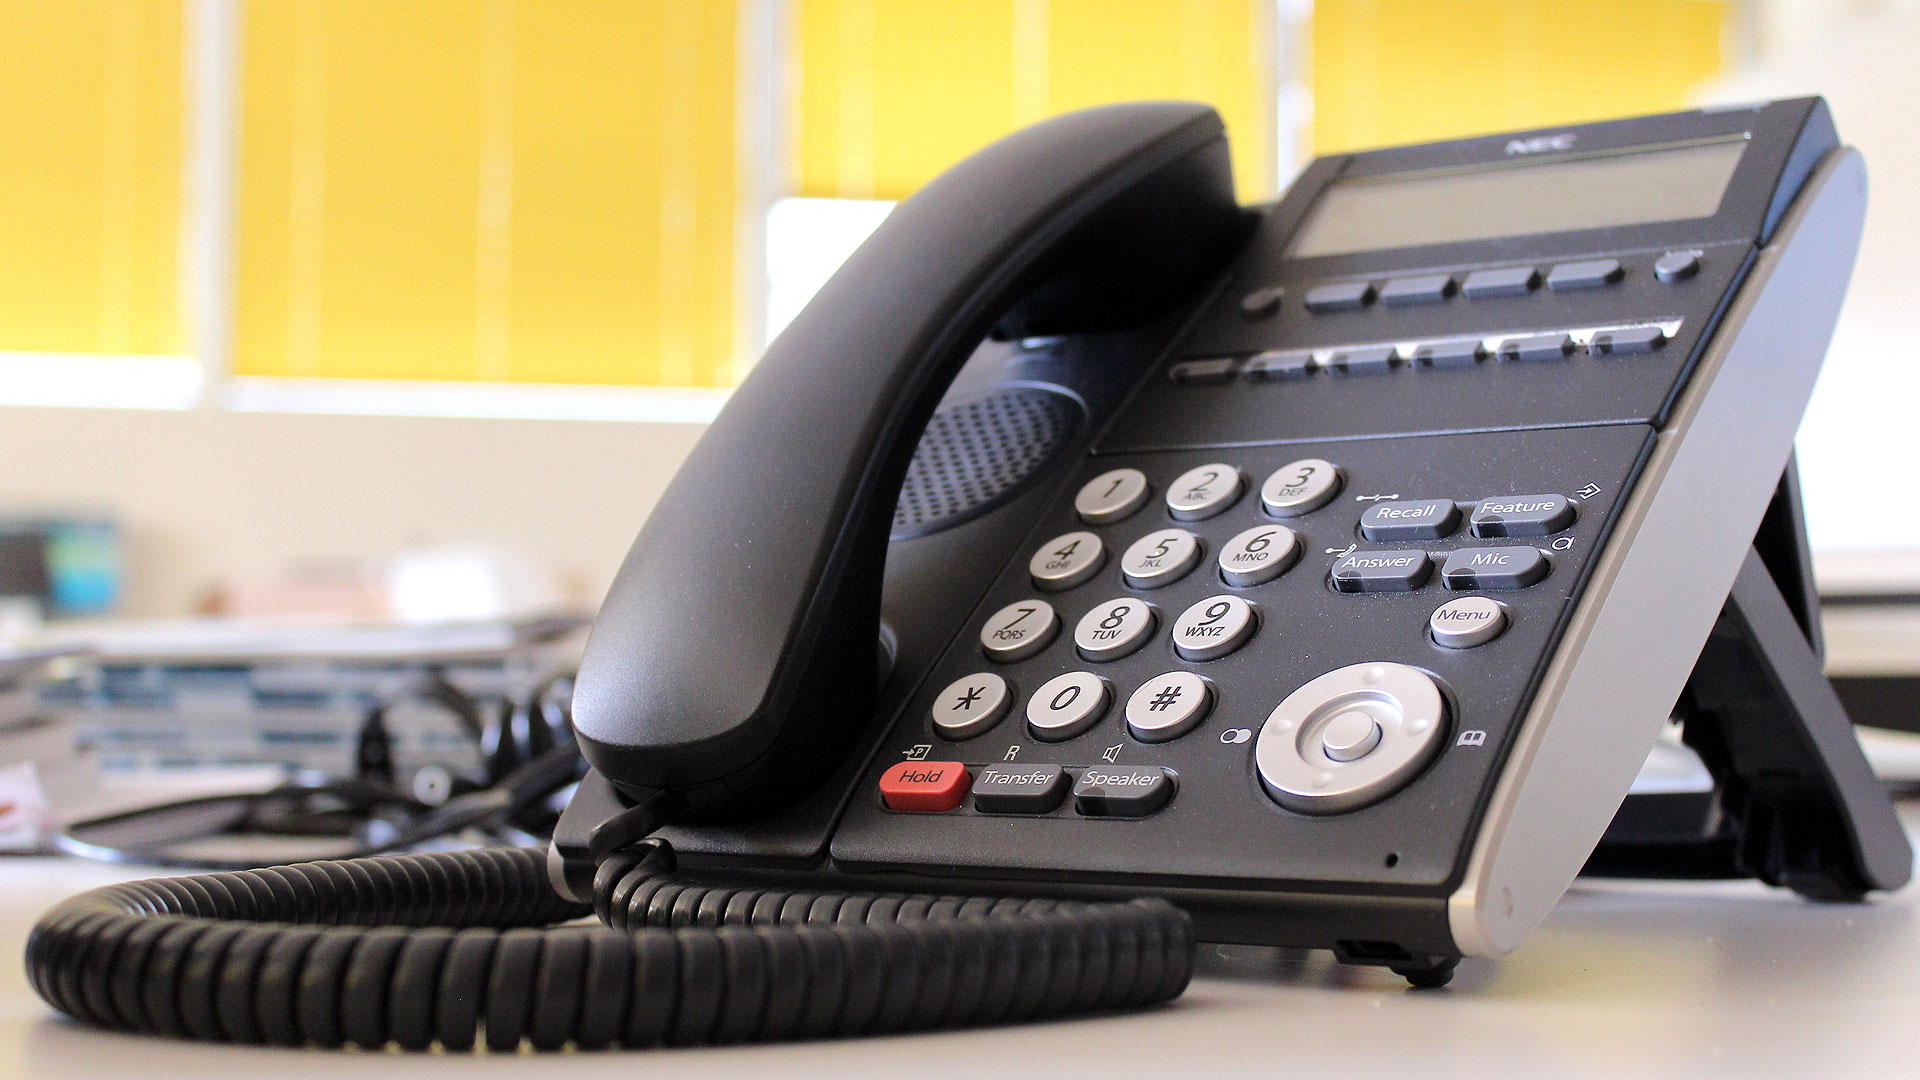 landline costing a fortune feature